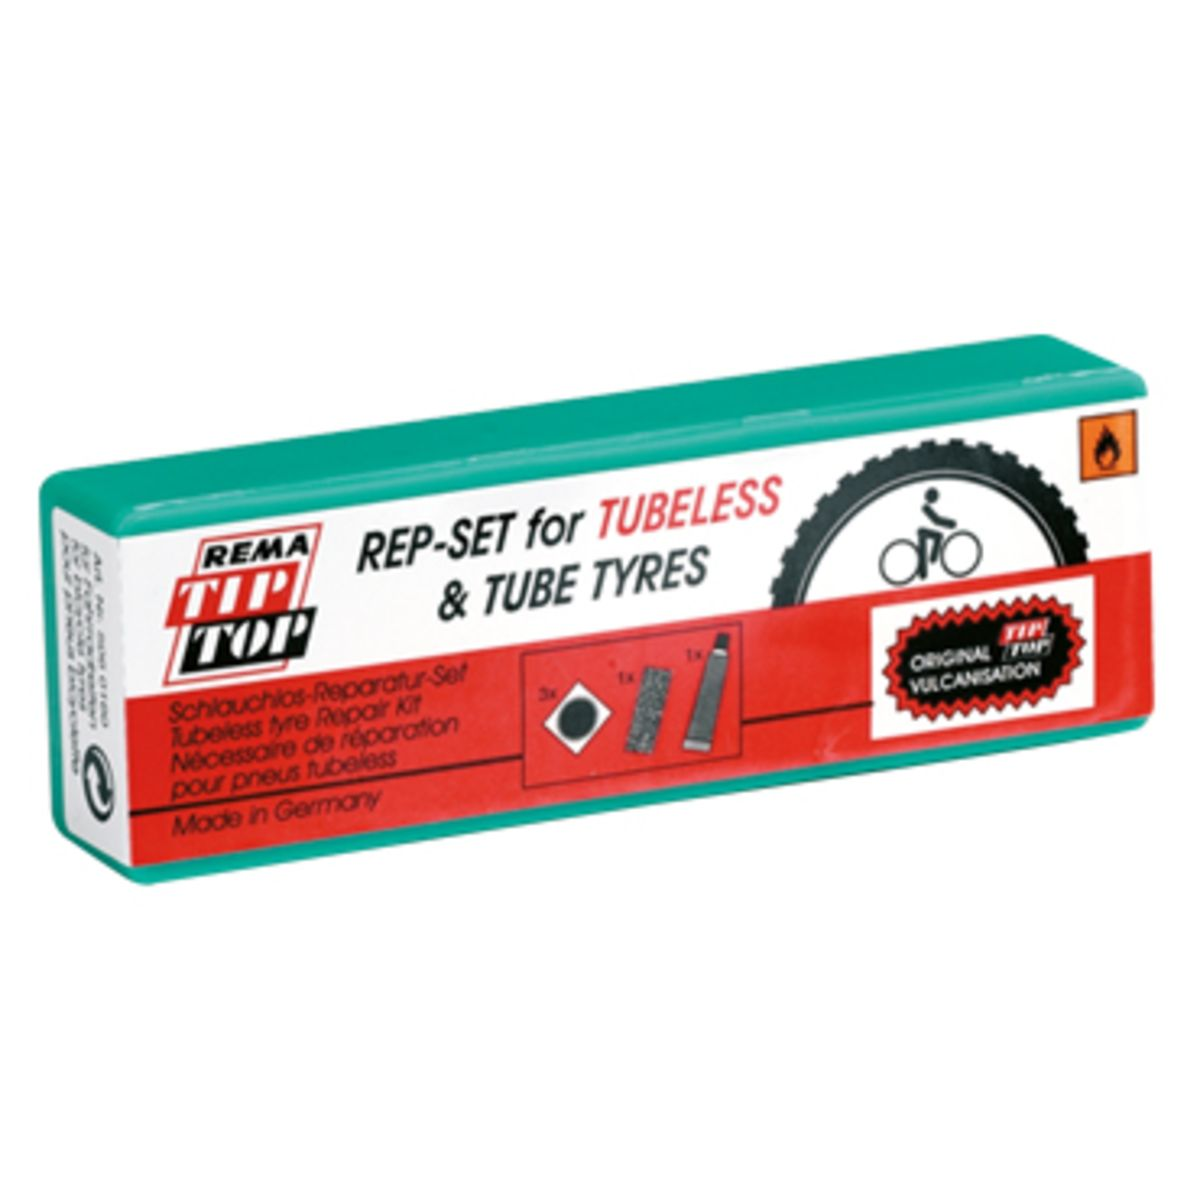 repair kit for tubeless tyres